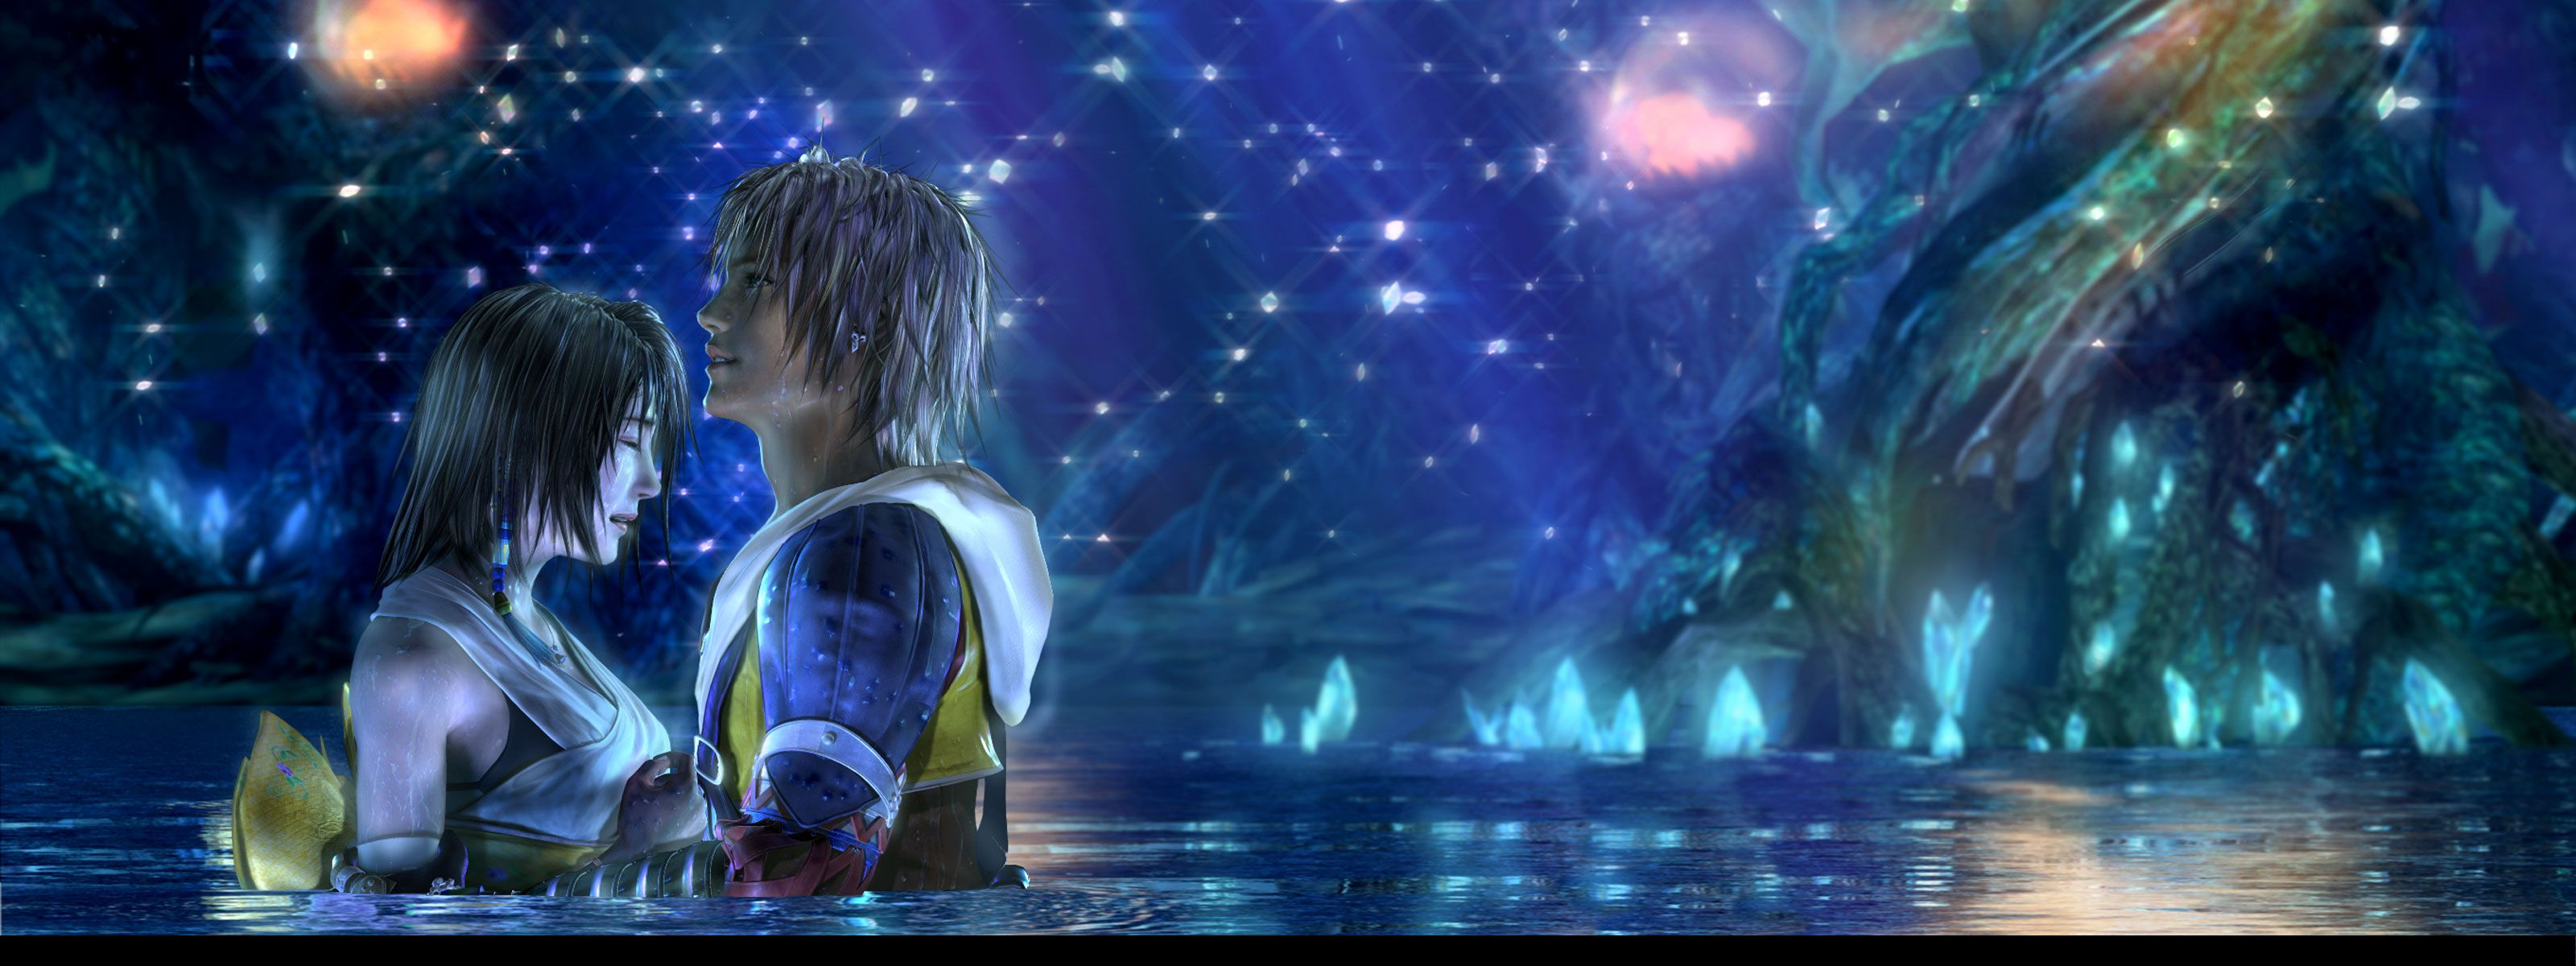 Final Fantasy Full HD Wallpaper And Background Image